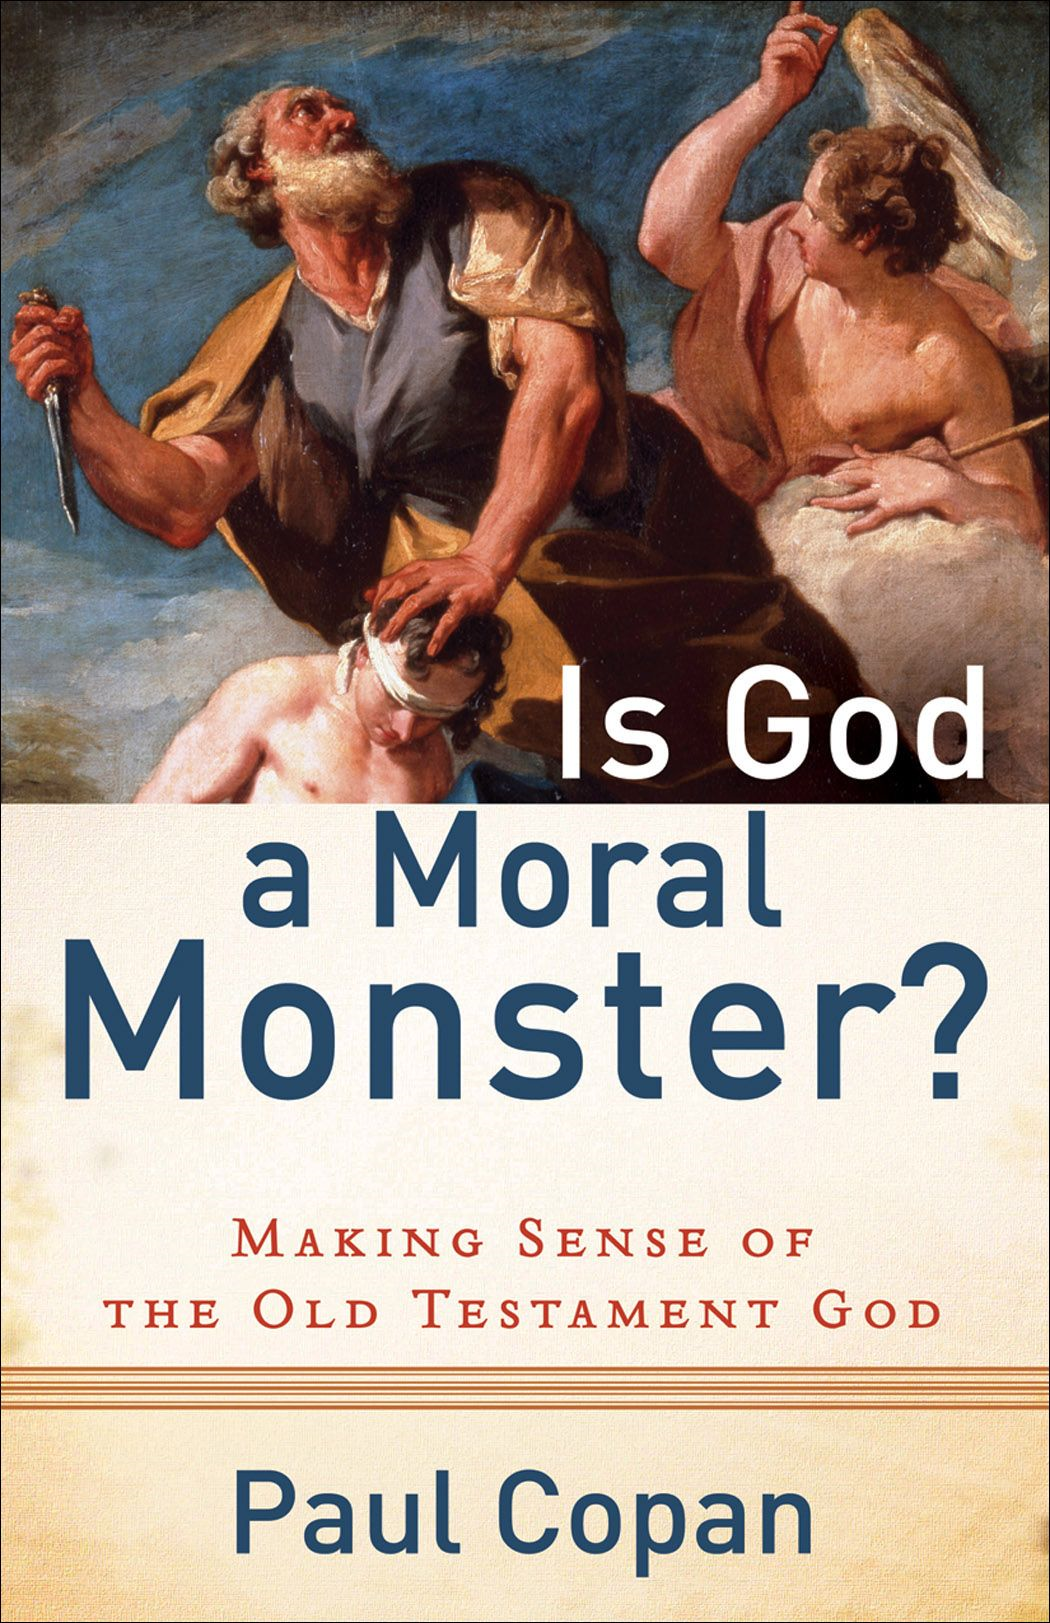 Is God a Moral Monster?